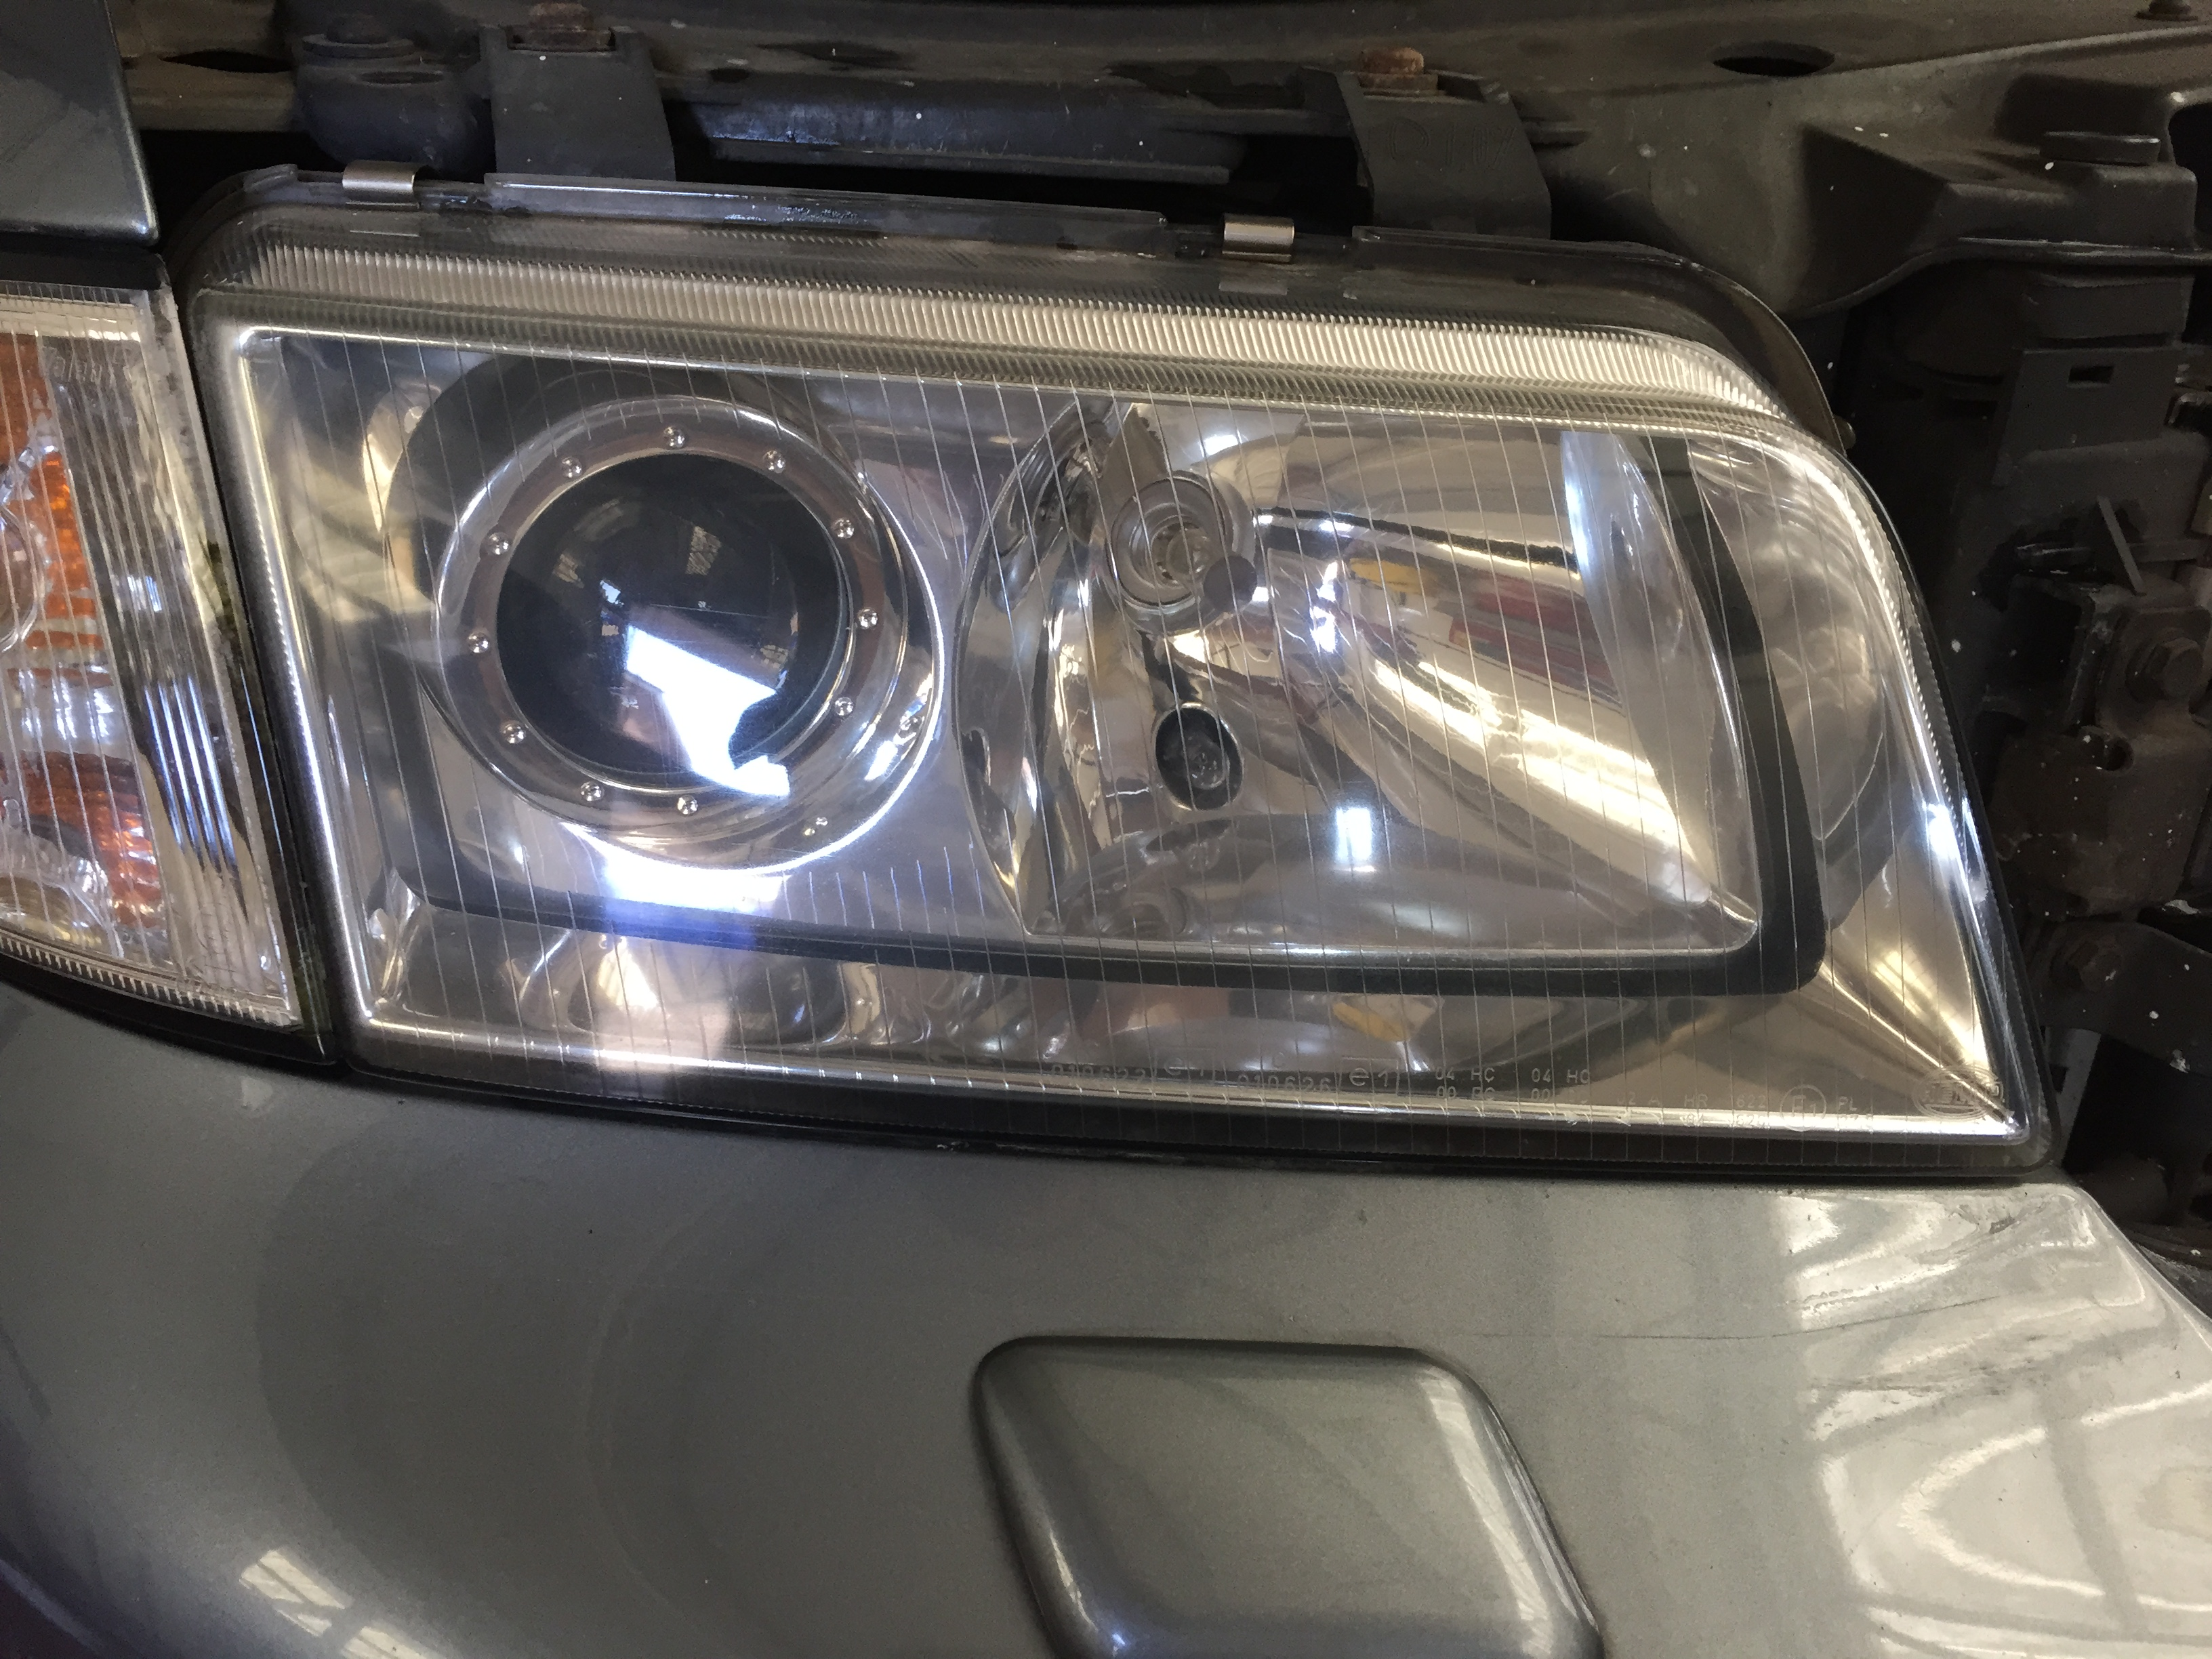 End reults and a lovely clear headlight that will pass its MOT without a problem